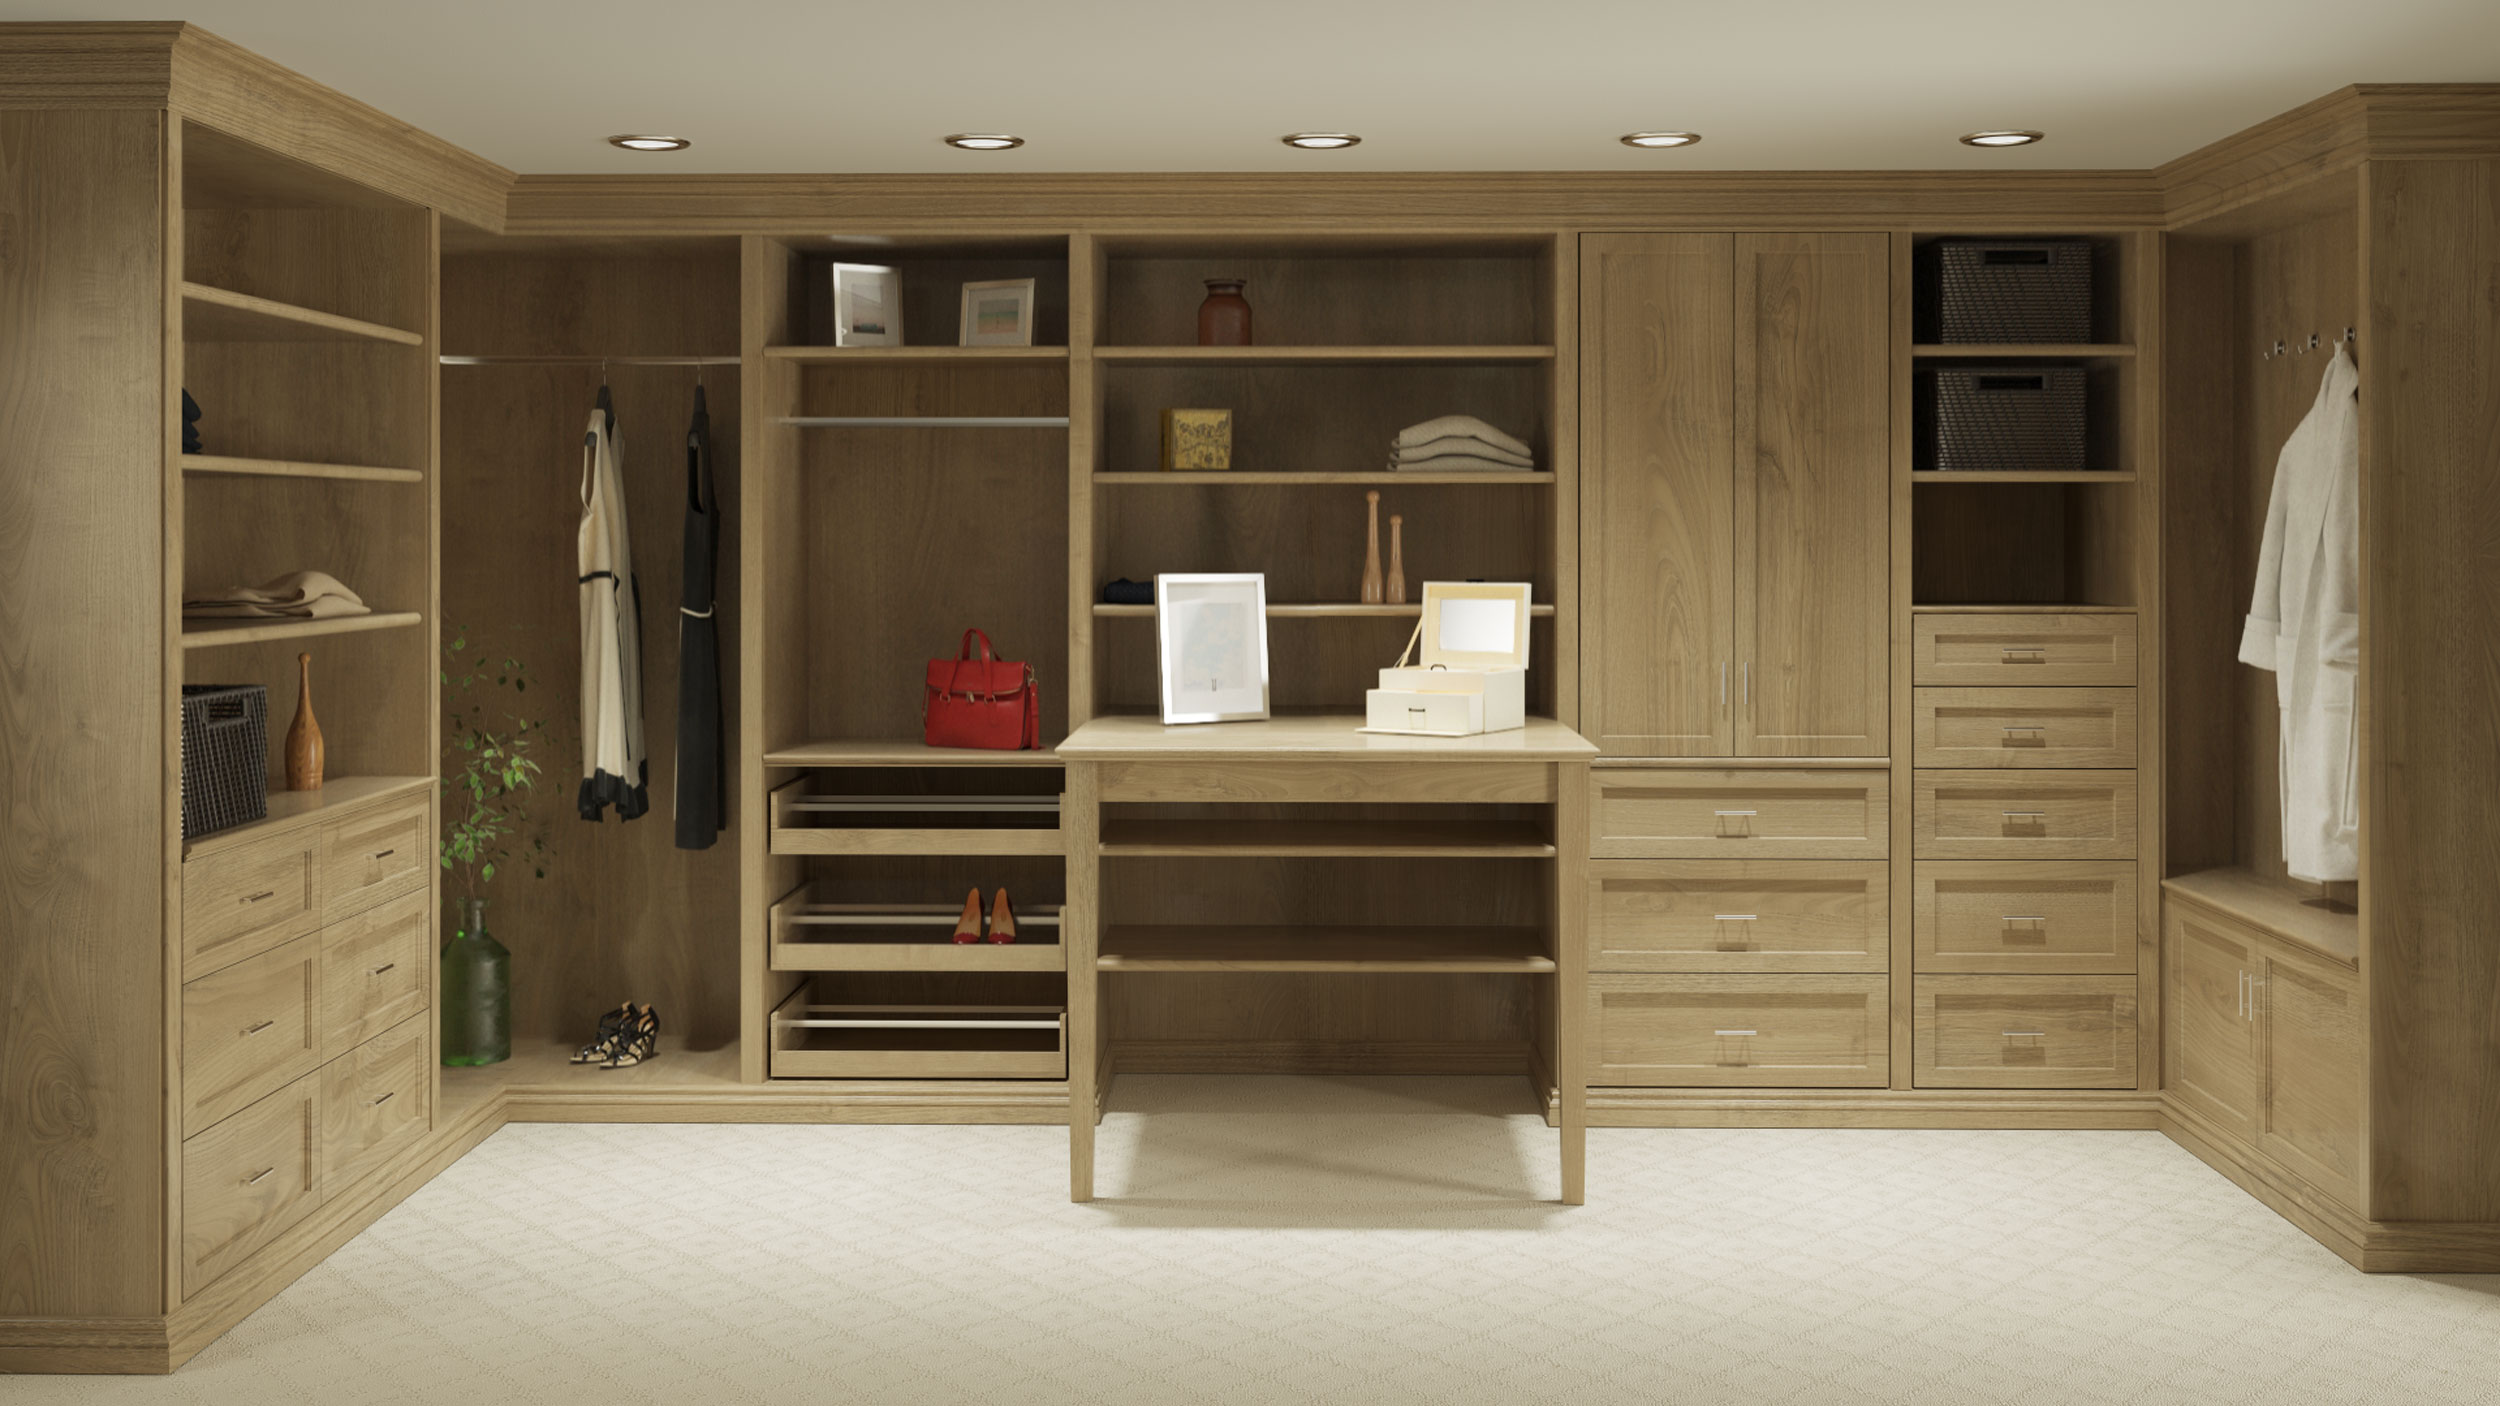 professional computer generated image of large closet